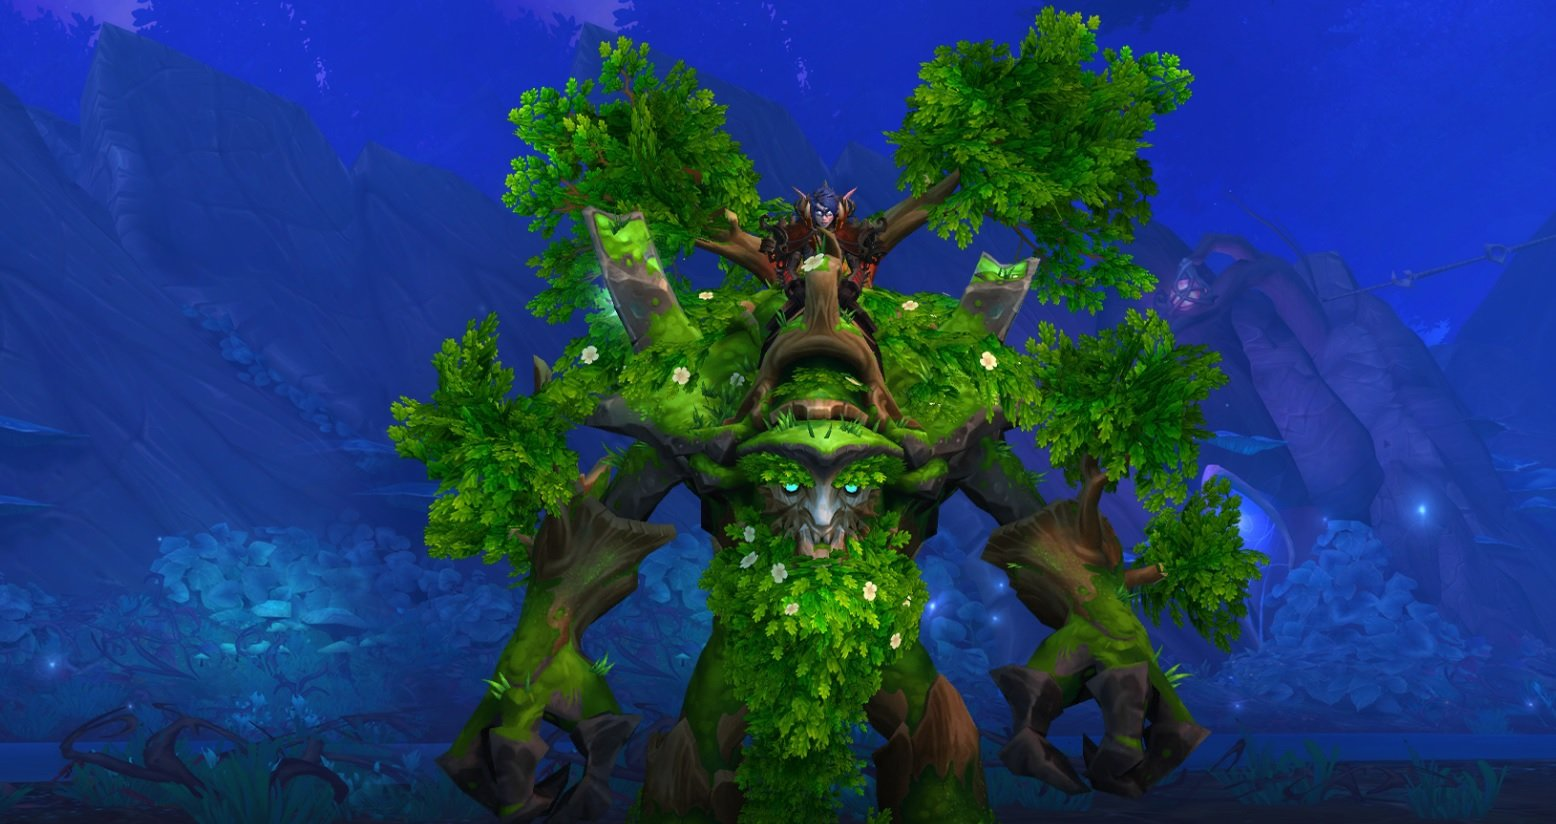 You get a free mount! Everyone gets a free World of Warcraft Wandering Ancient mount for logging in screenshot